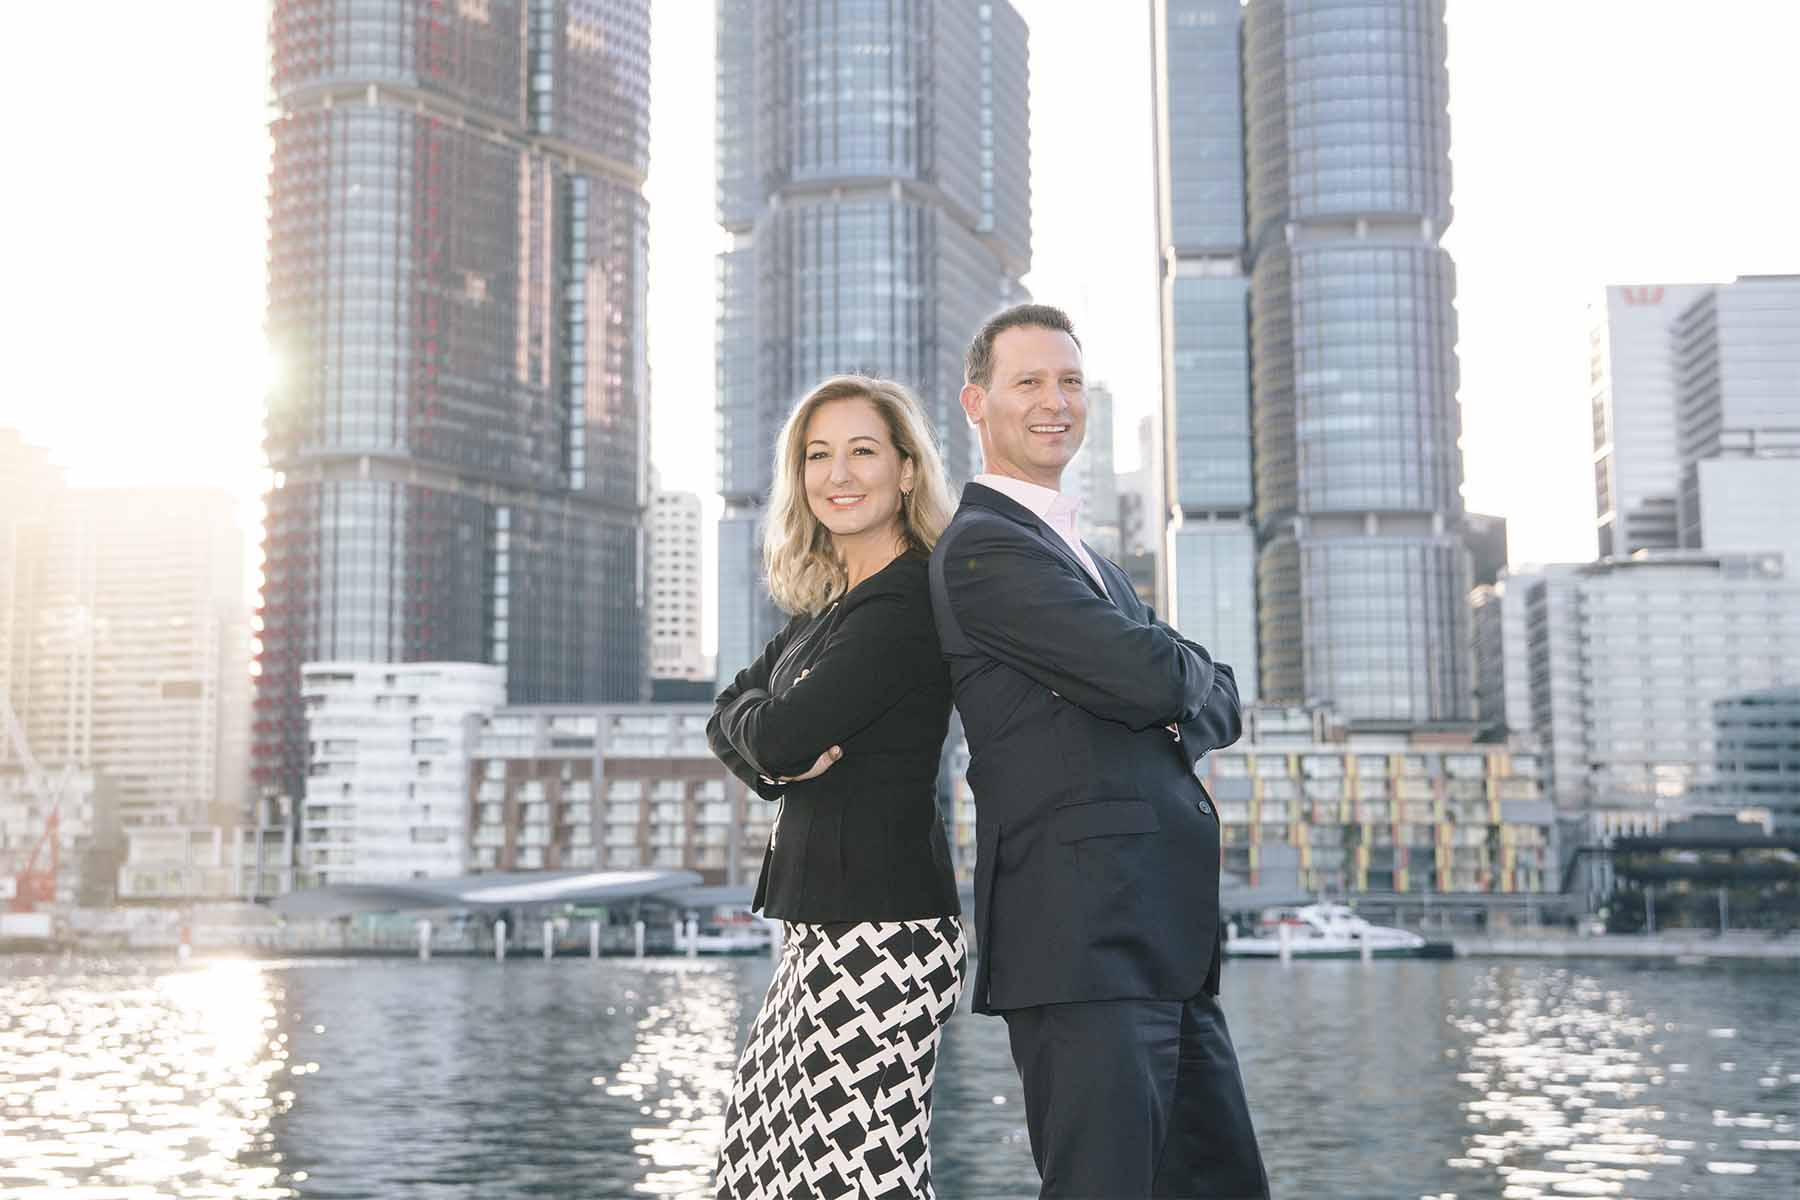 The 2 Directors of Oaktree talent stand back to back at sunrise with the International Towers of Barangaroo behind them